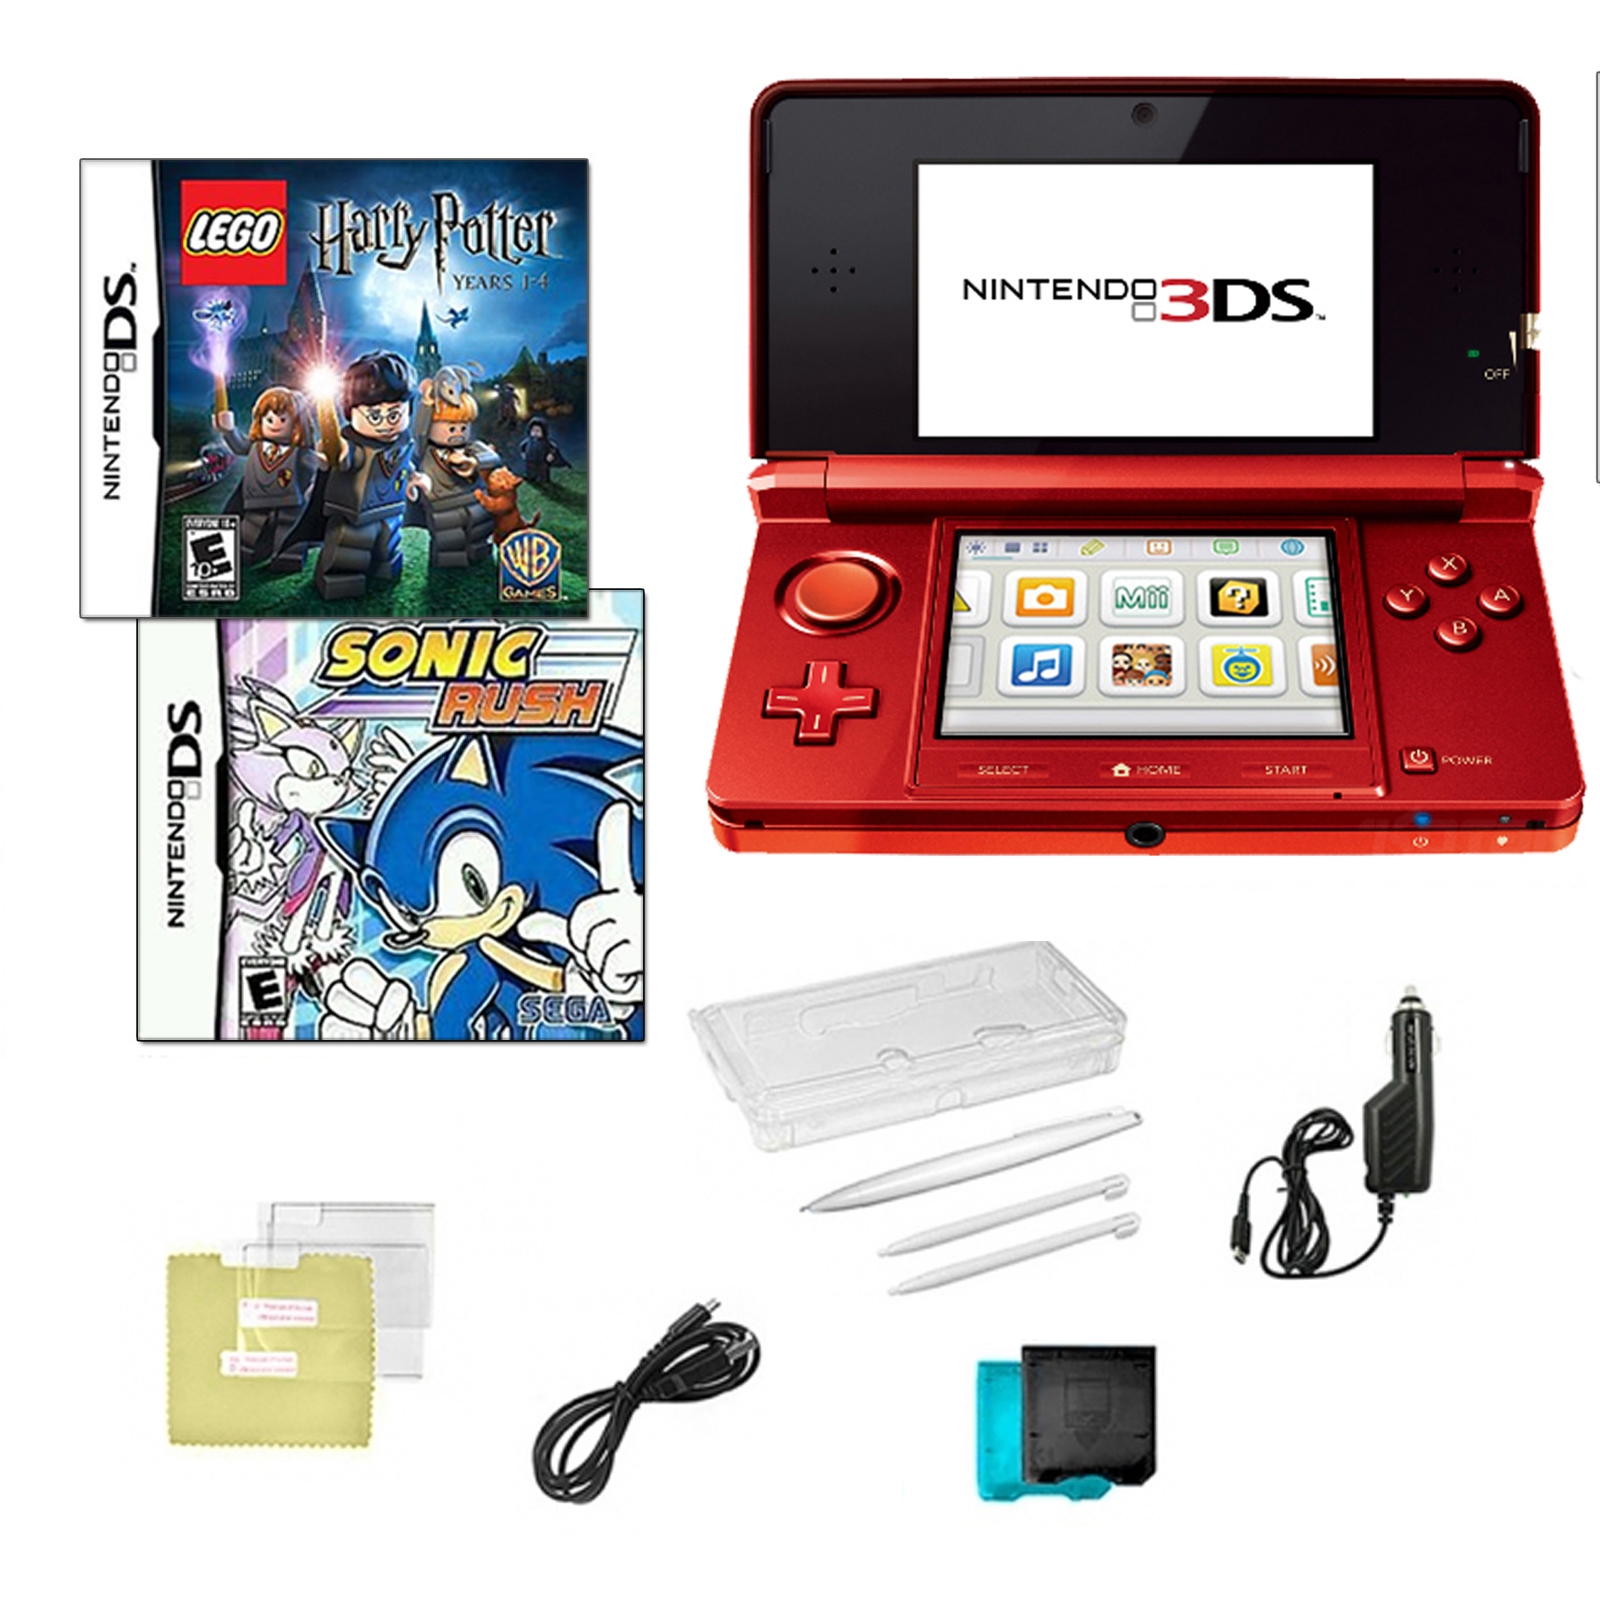 3DS Red with Sonic Rush and Lego Hary Potter